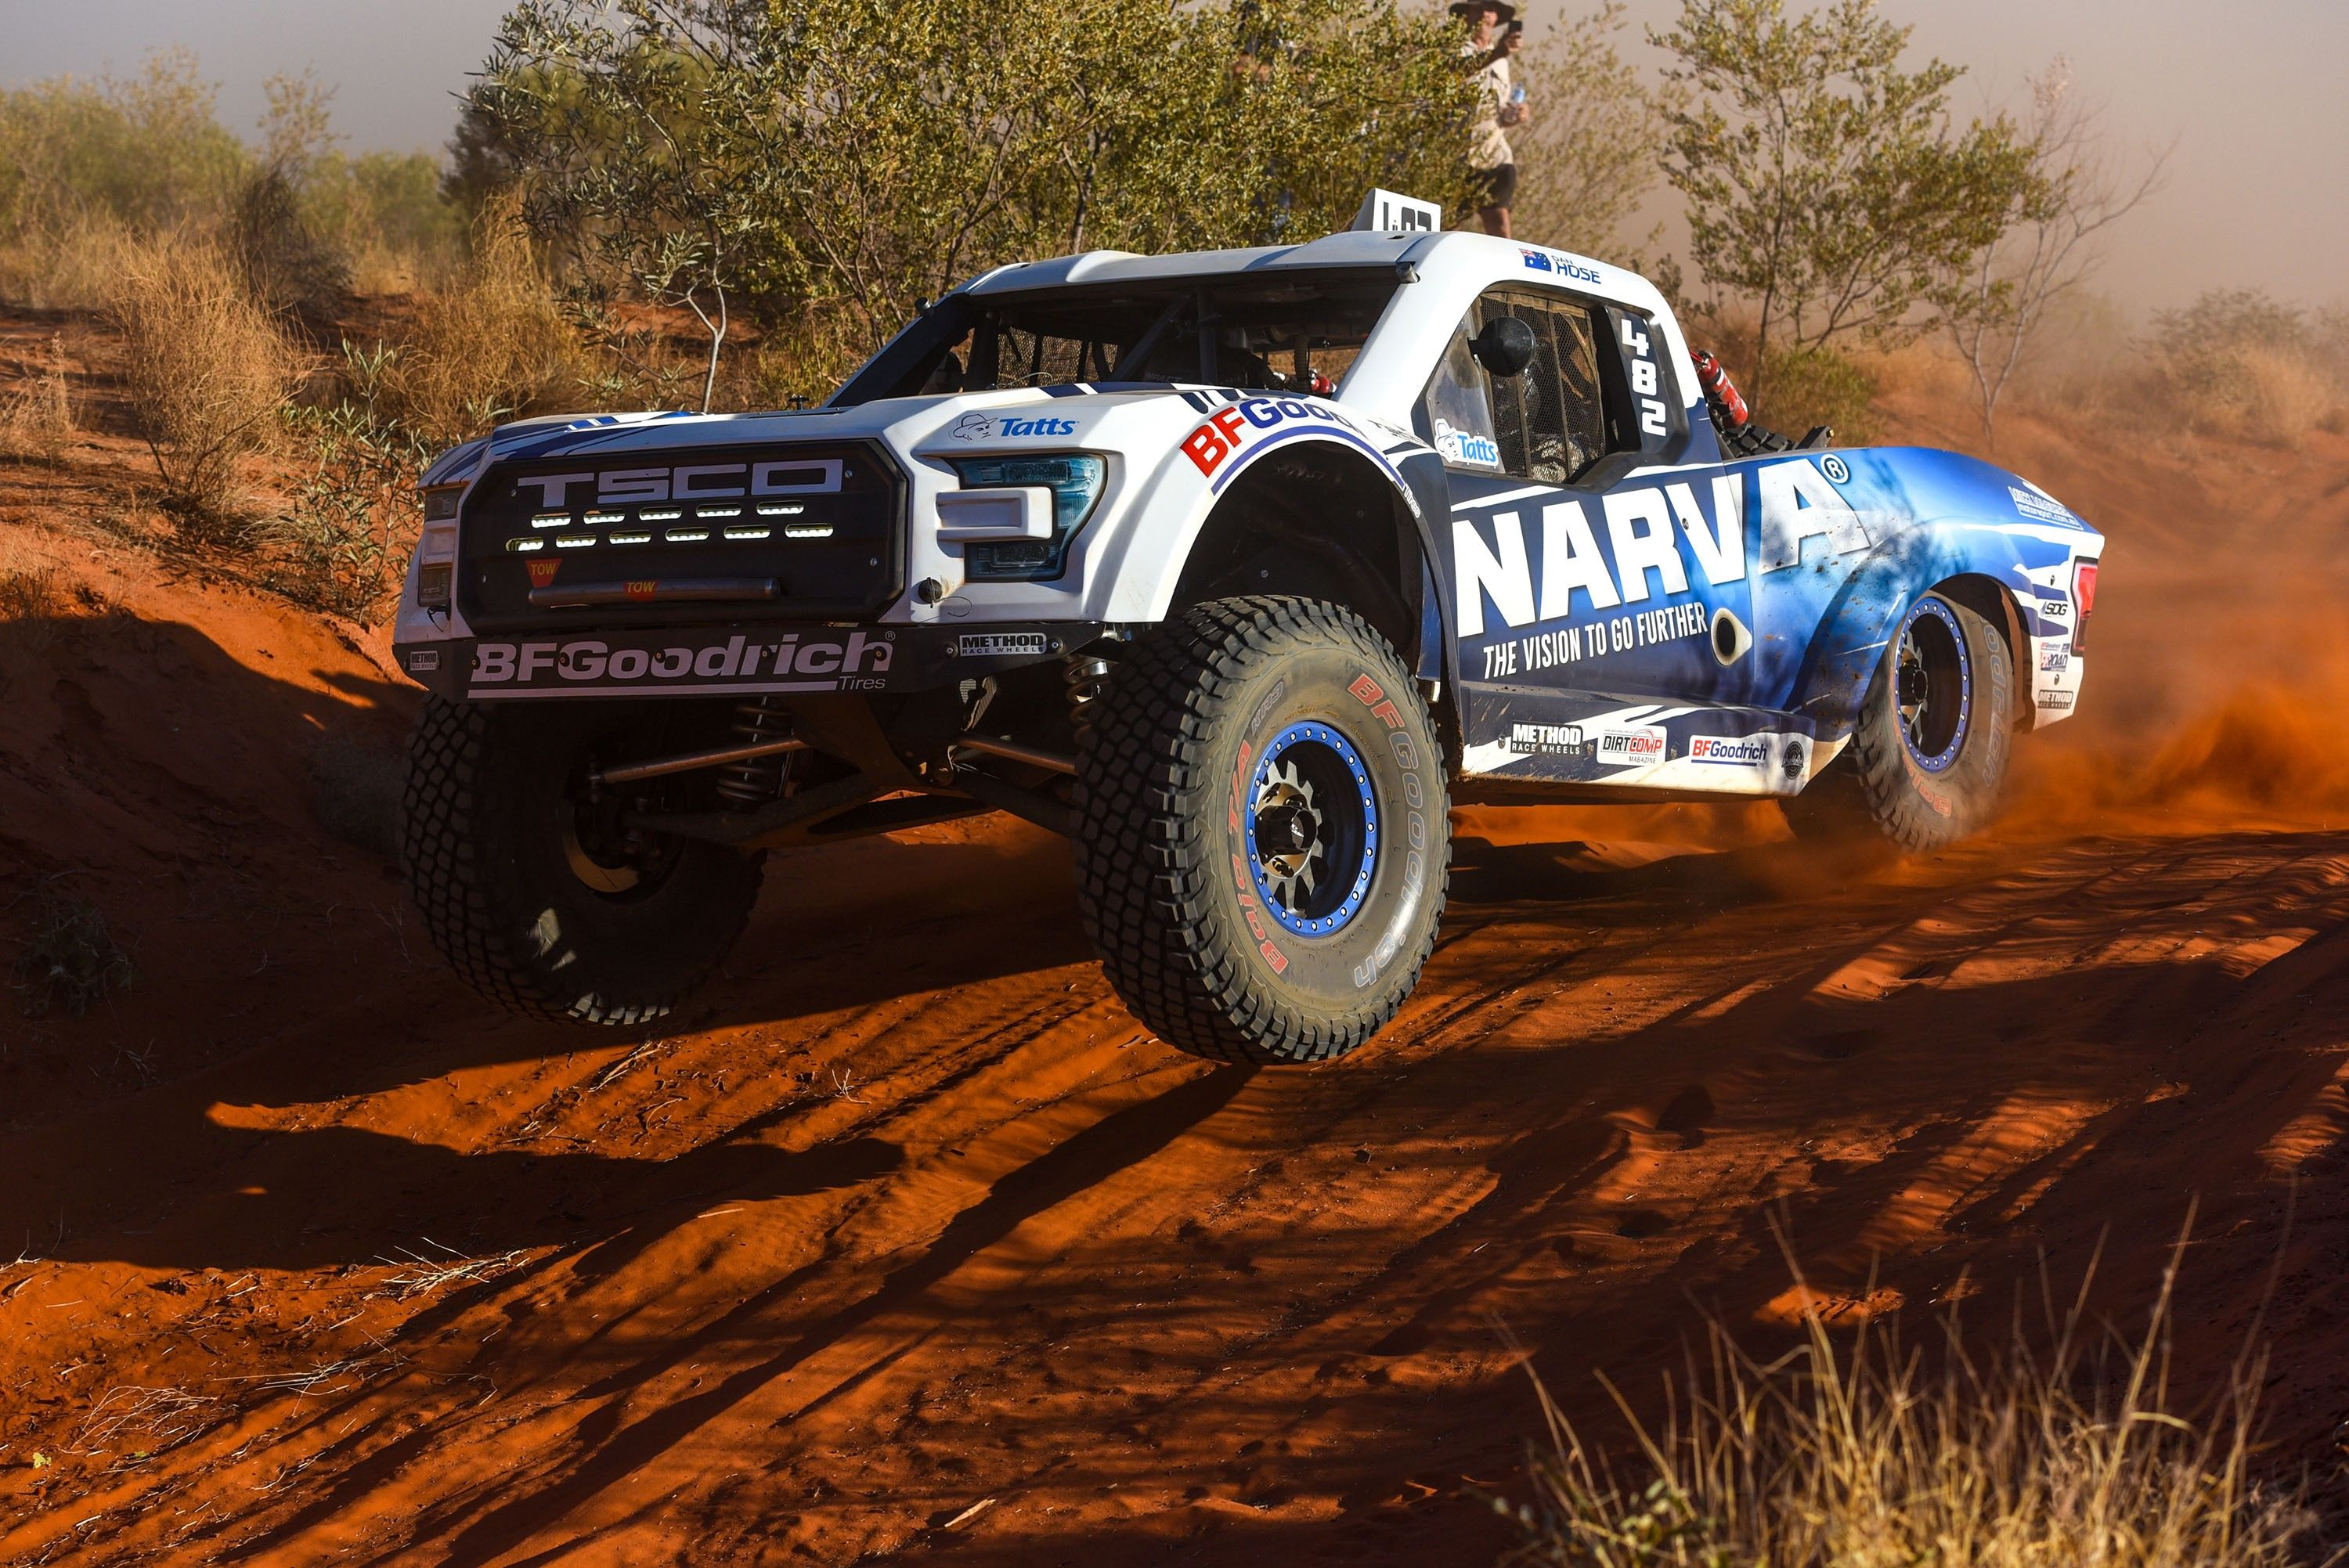 narva tsco trophy truck over red bumps.jpg